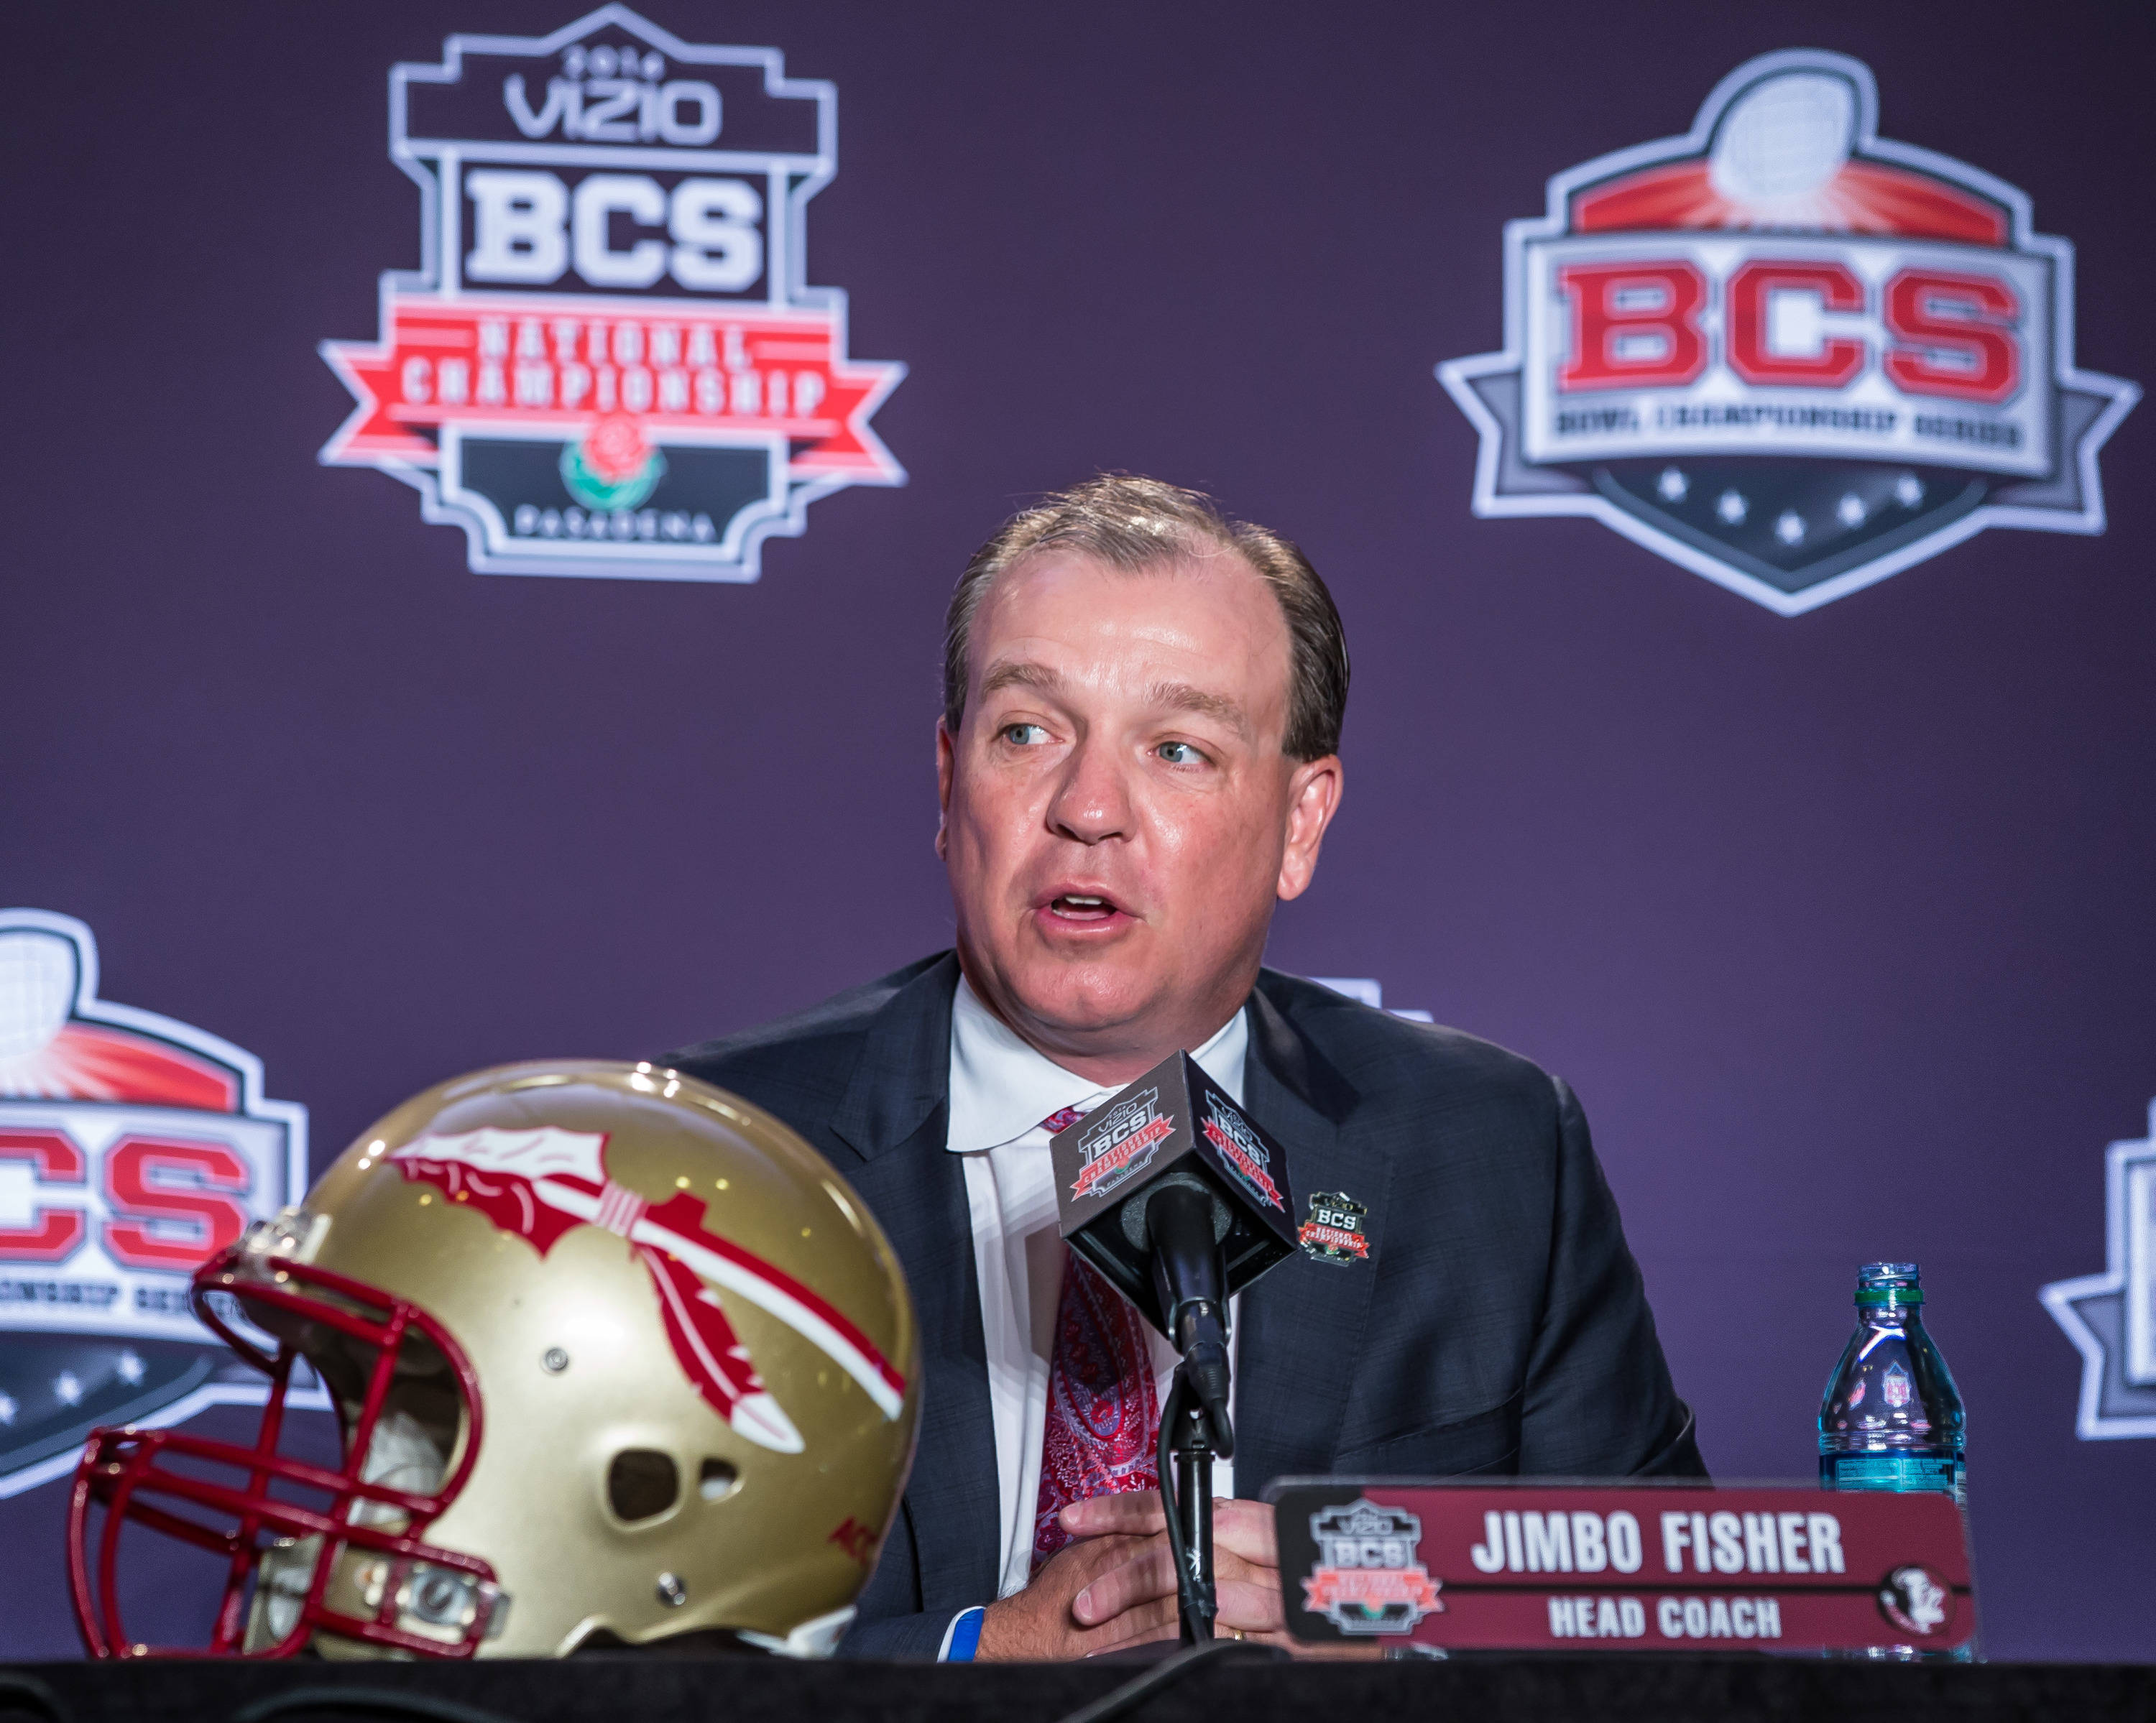 Jimbo Fisher's Sunday press conference.